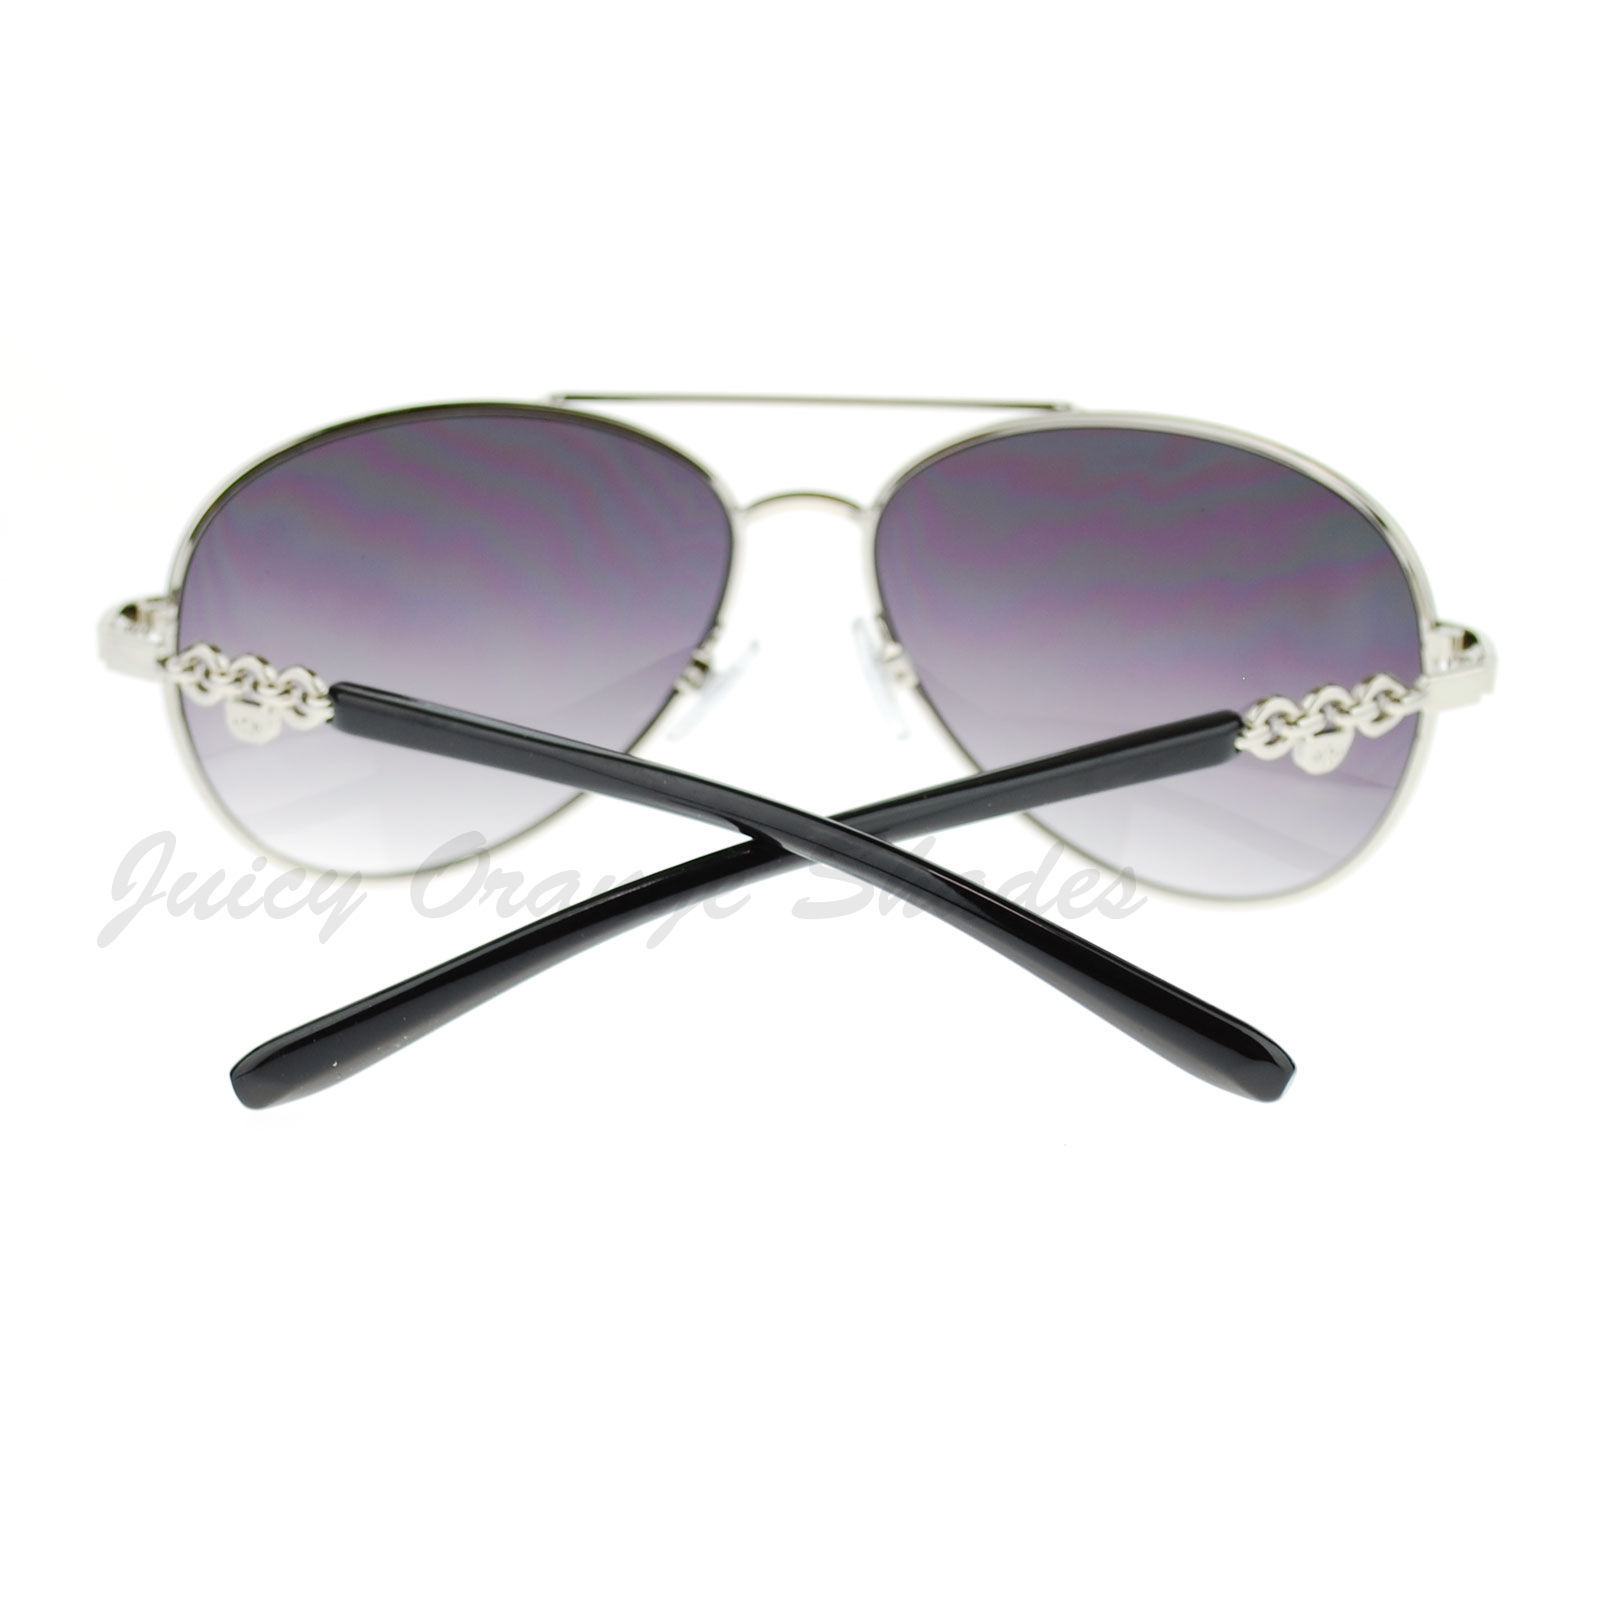 Womens Aviator Sunglasses Top Bar Colored Frame Round Aviators